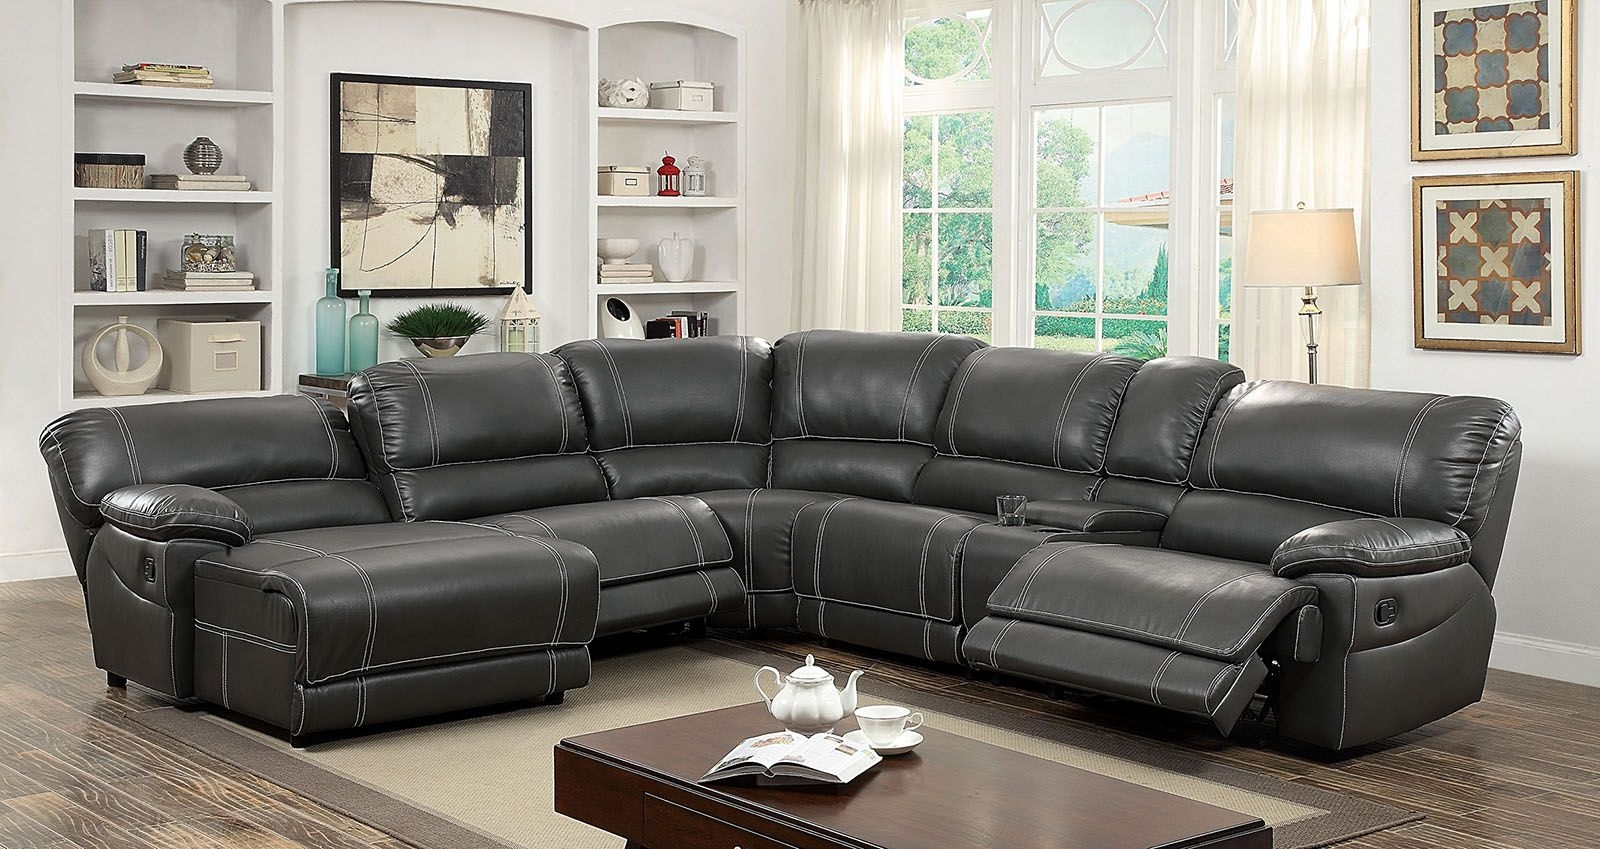 Christopher Reclining Sectional Collection Inside Denali Charcoal Grey 6 Piece Reclining Sectionals With 2 Power Headrests (View 19 of 25)